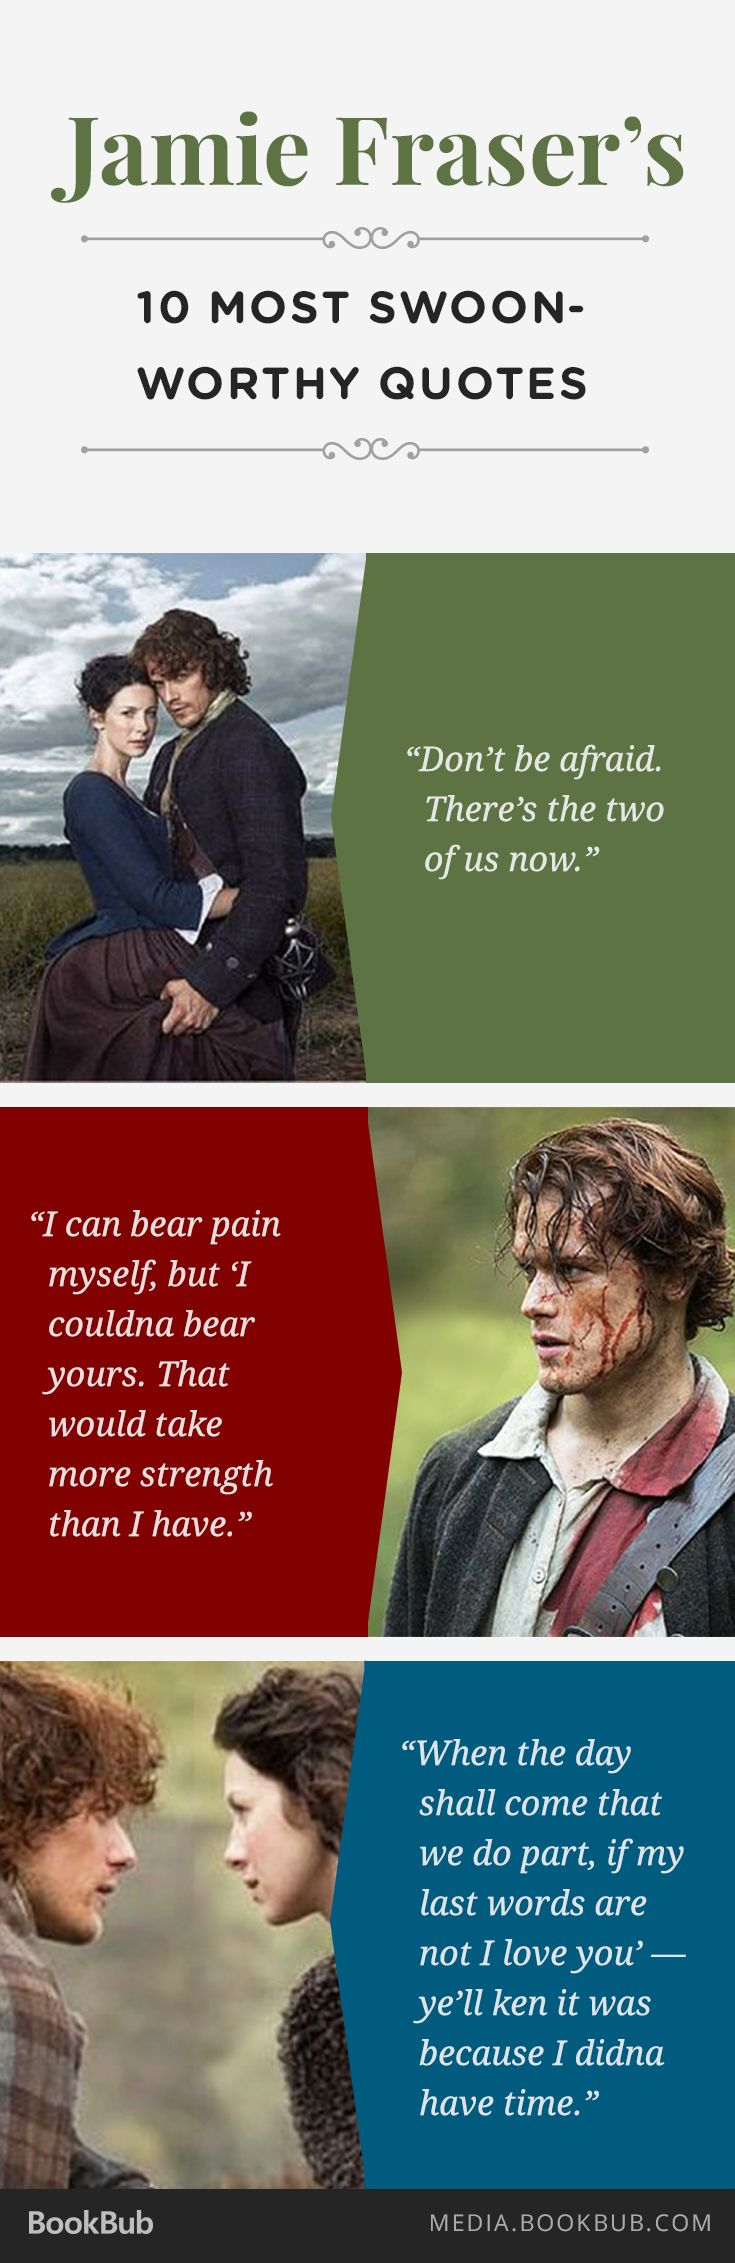 Outlander fans: Check out 10 of Jamie Fraser's most swoon-worthy quotes.